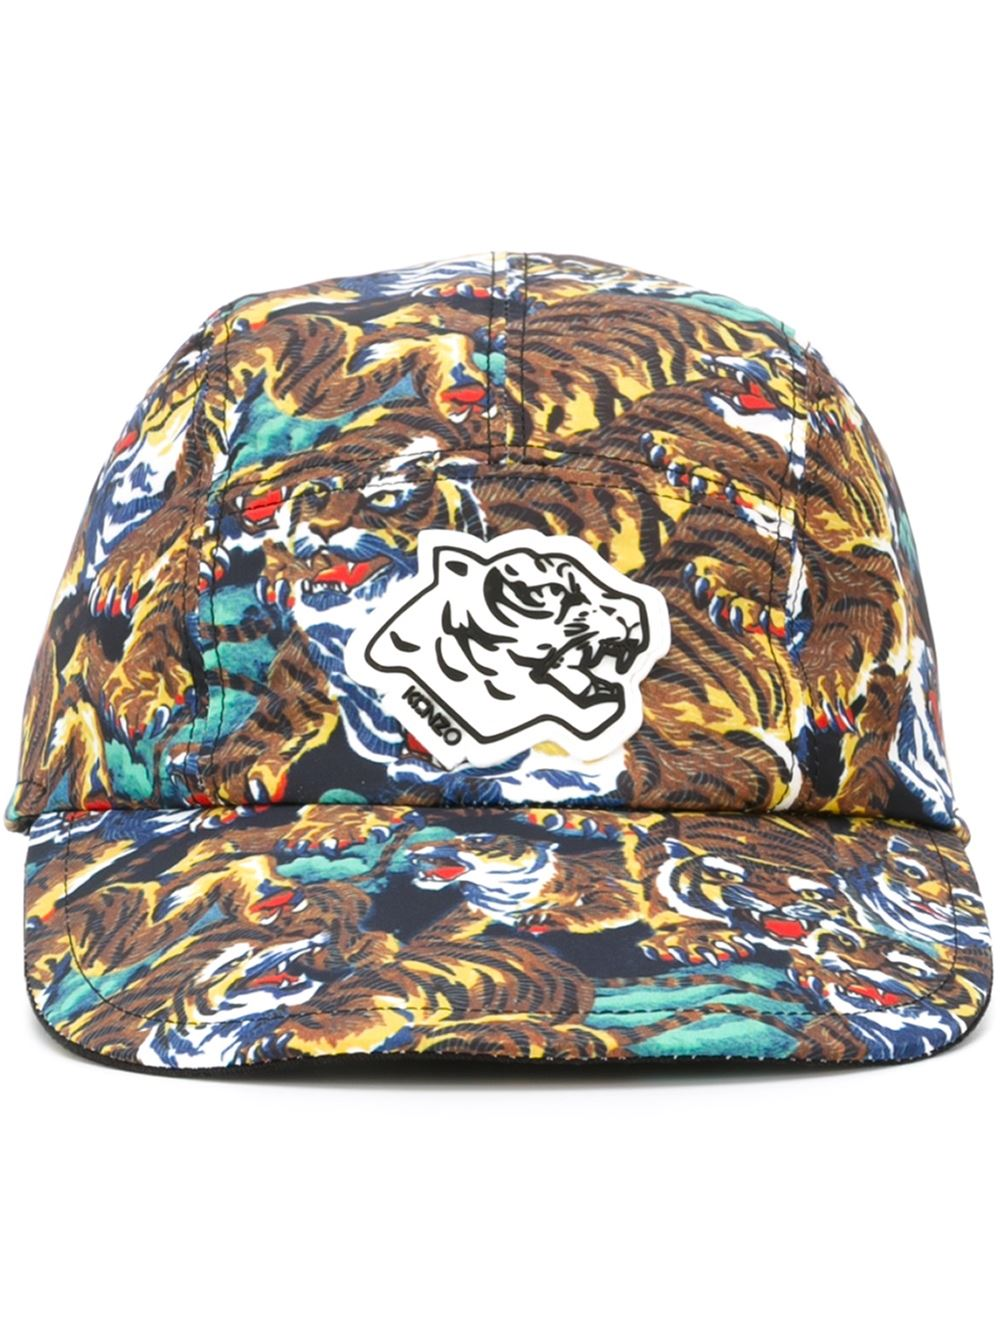 Flying Bag Homme Casquette kenzo Accessories Tiger Kenzo Kalifornia 4wqpn0x5wP